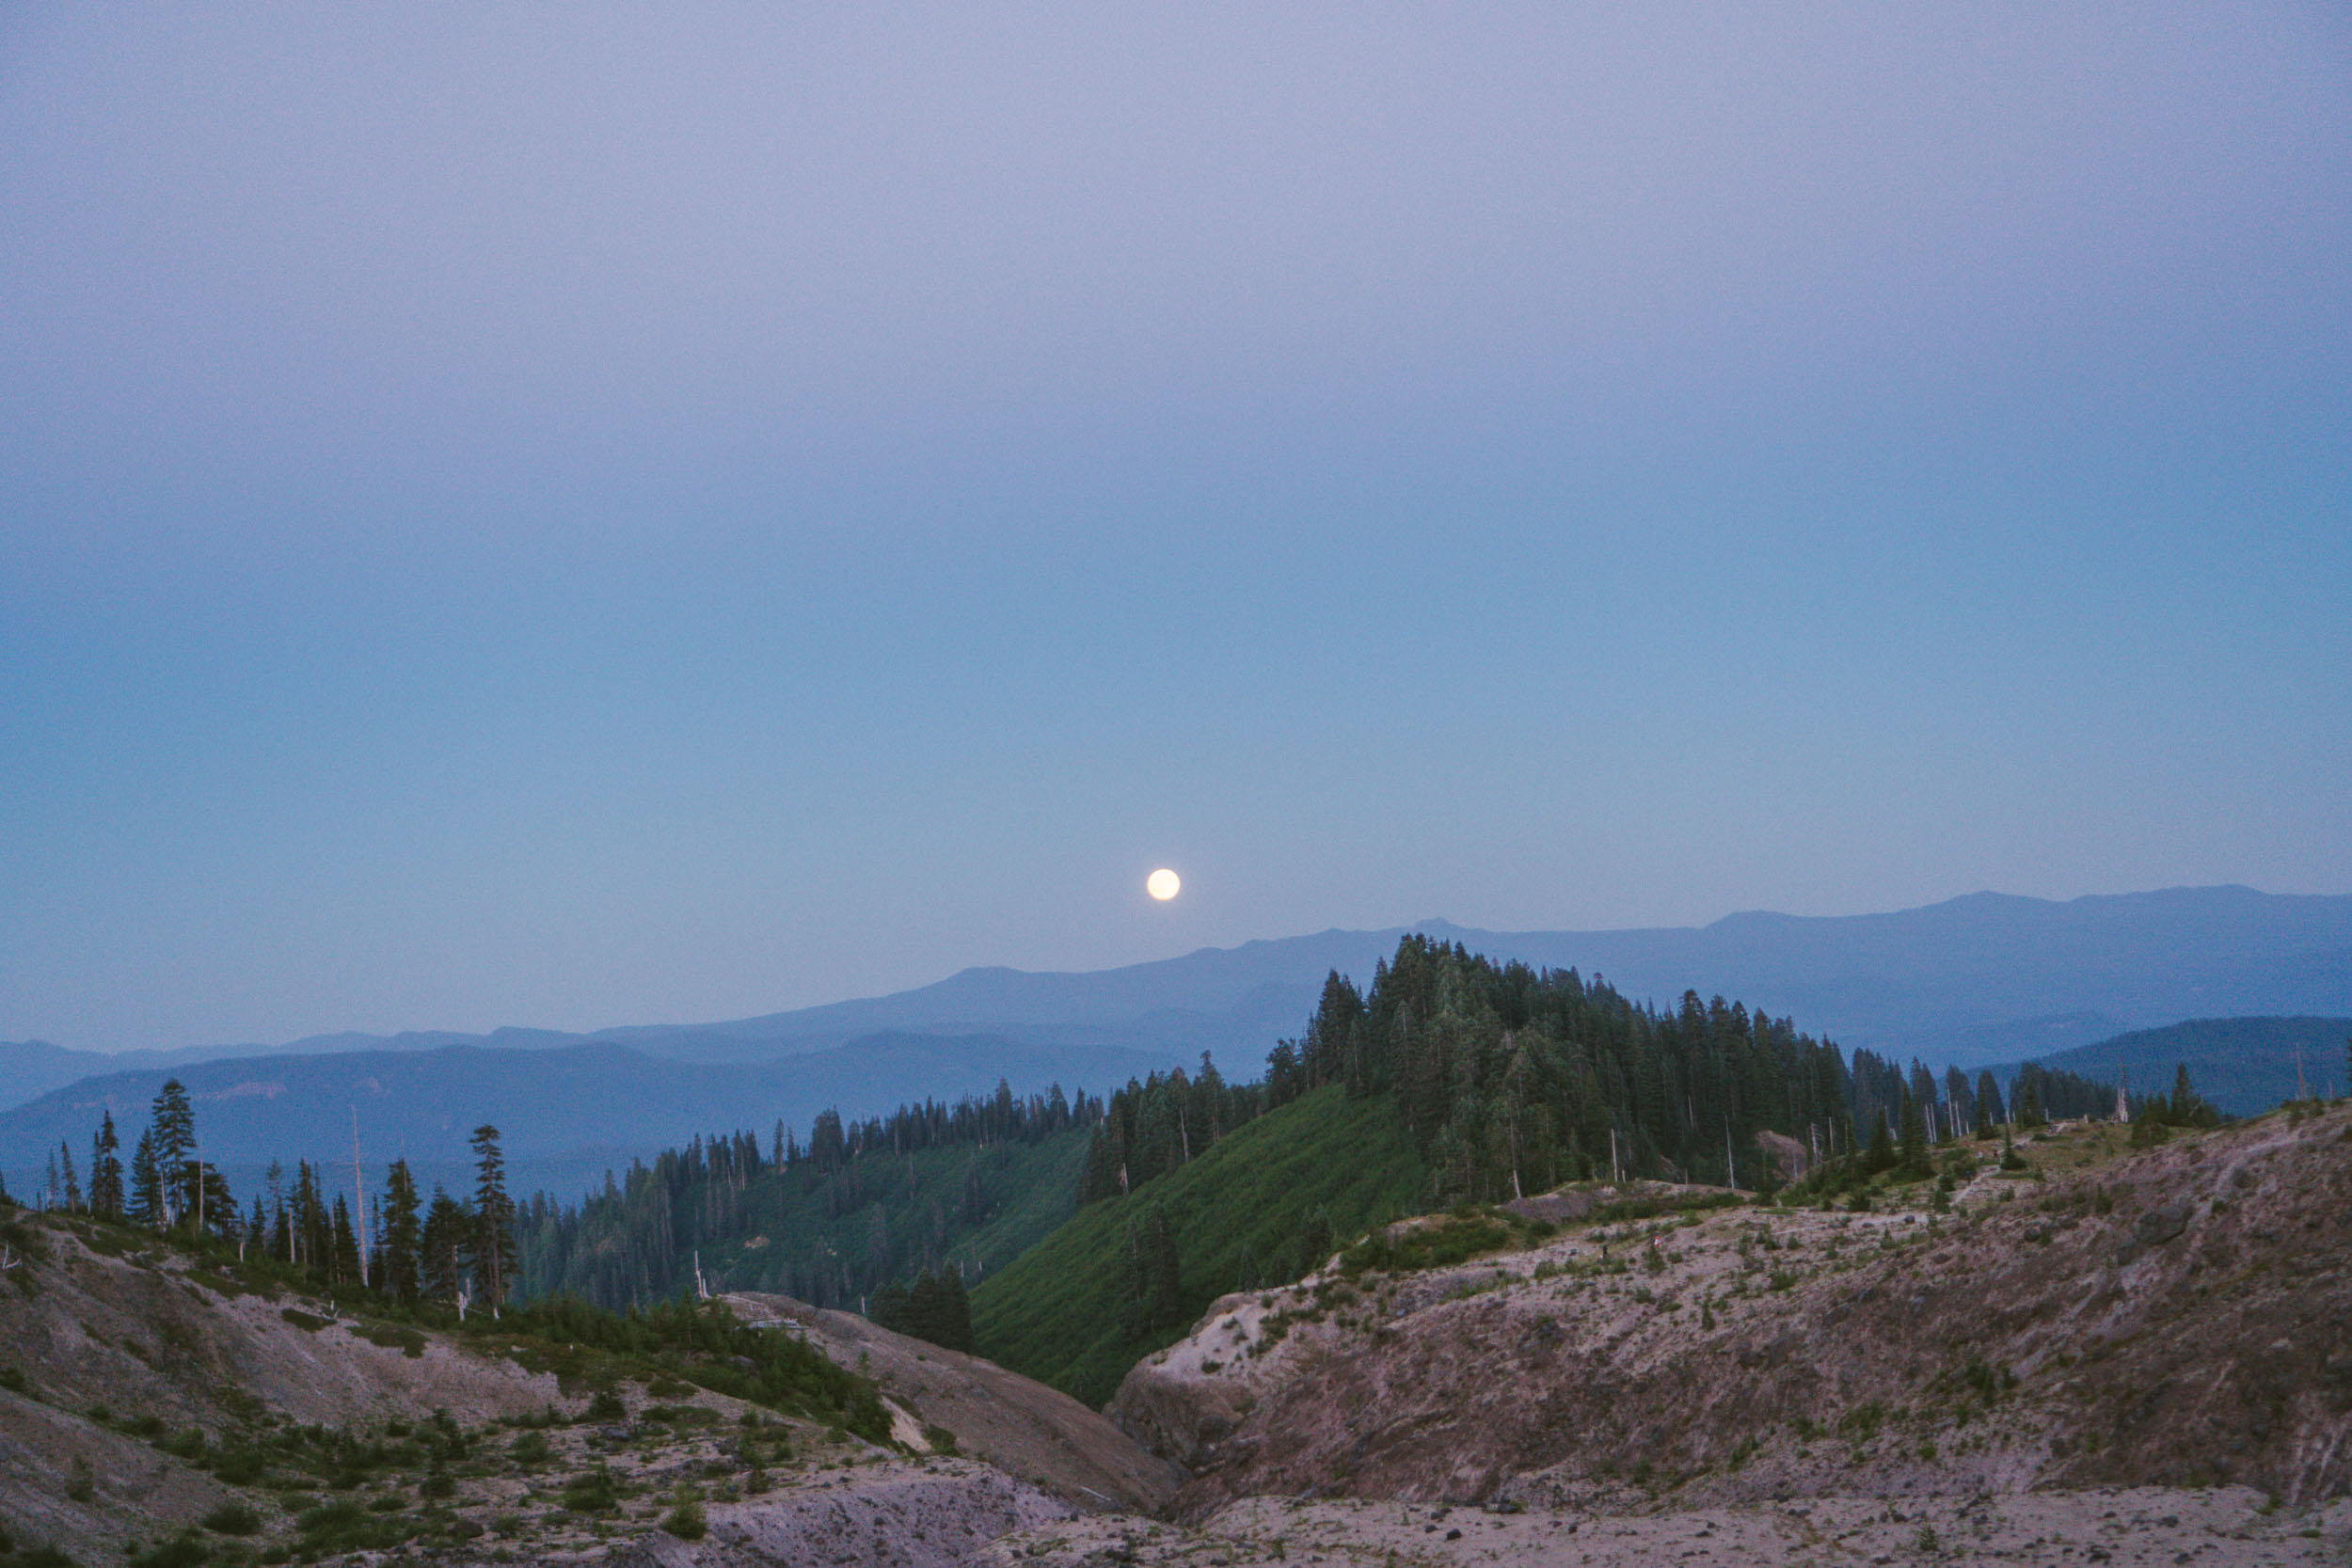 Full_Moon_Mt_St_Helens_21.jpg